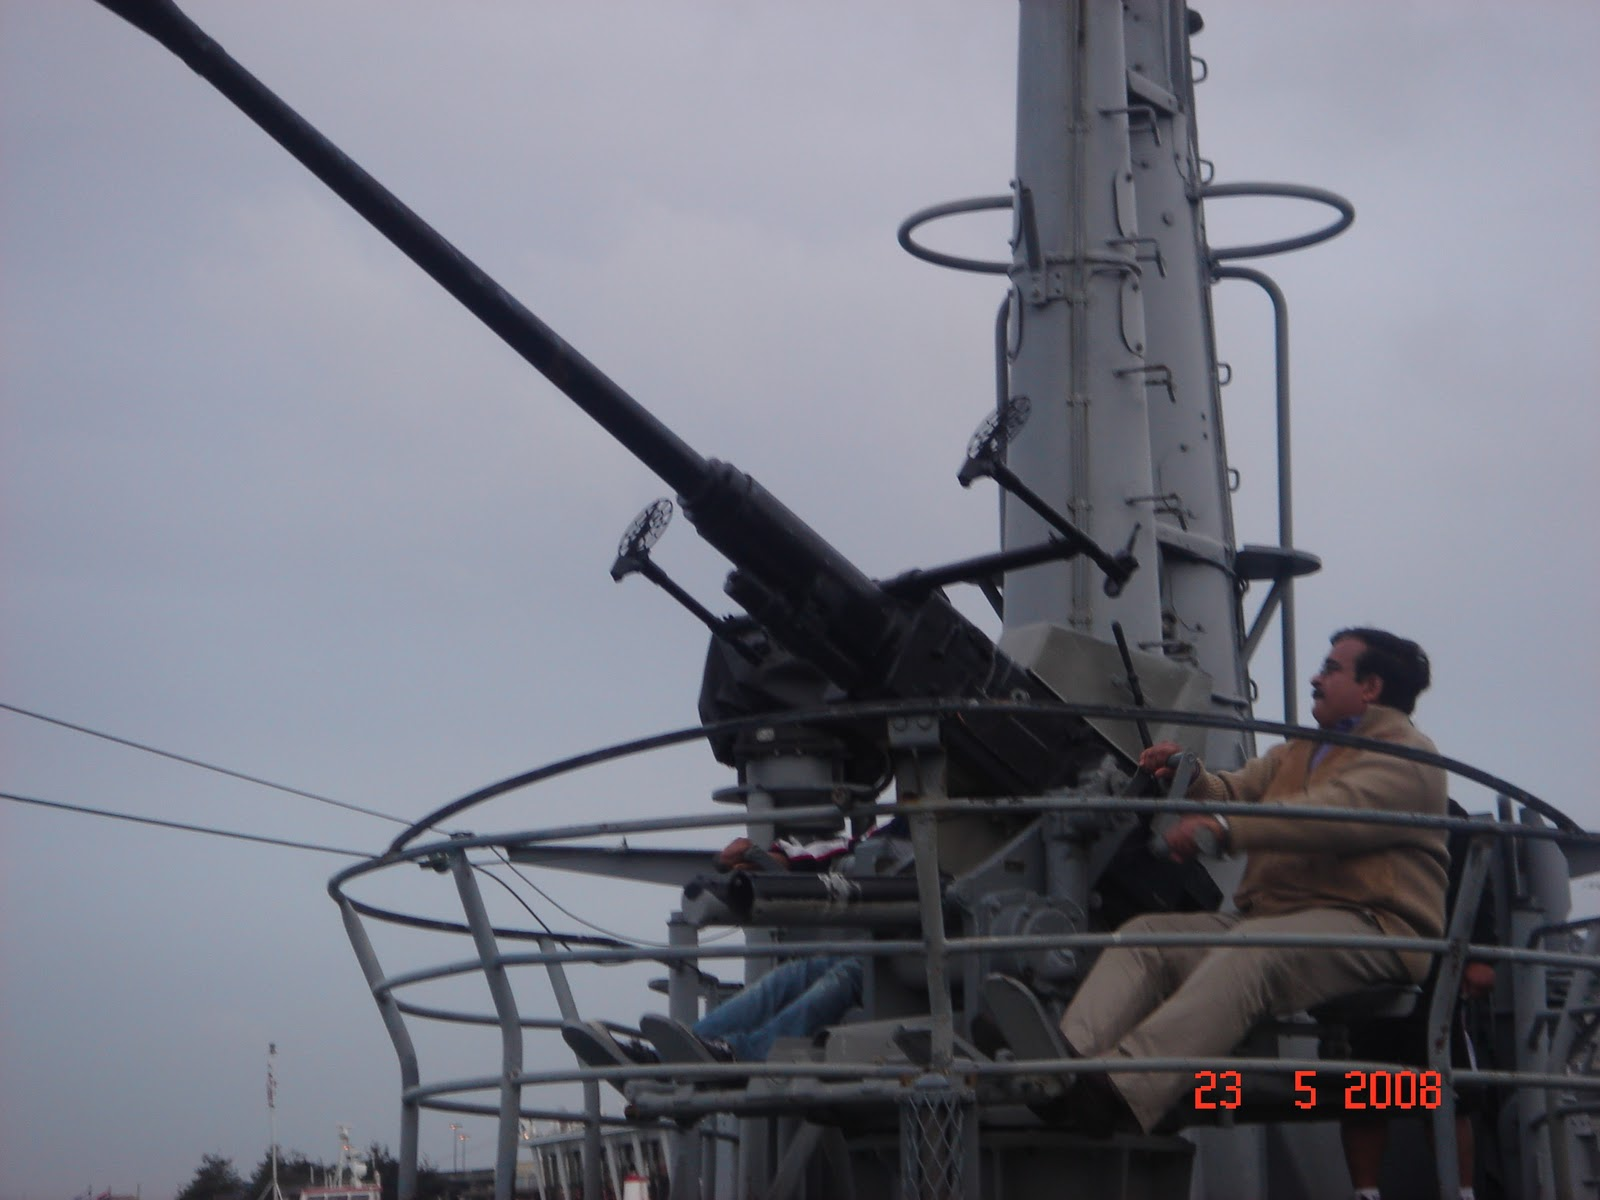 Submarine Anti Aircraft Gun, San Francisco